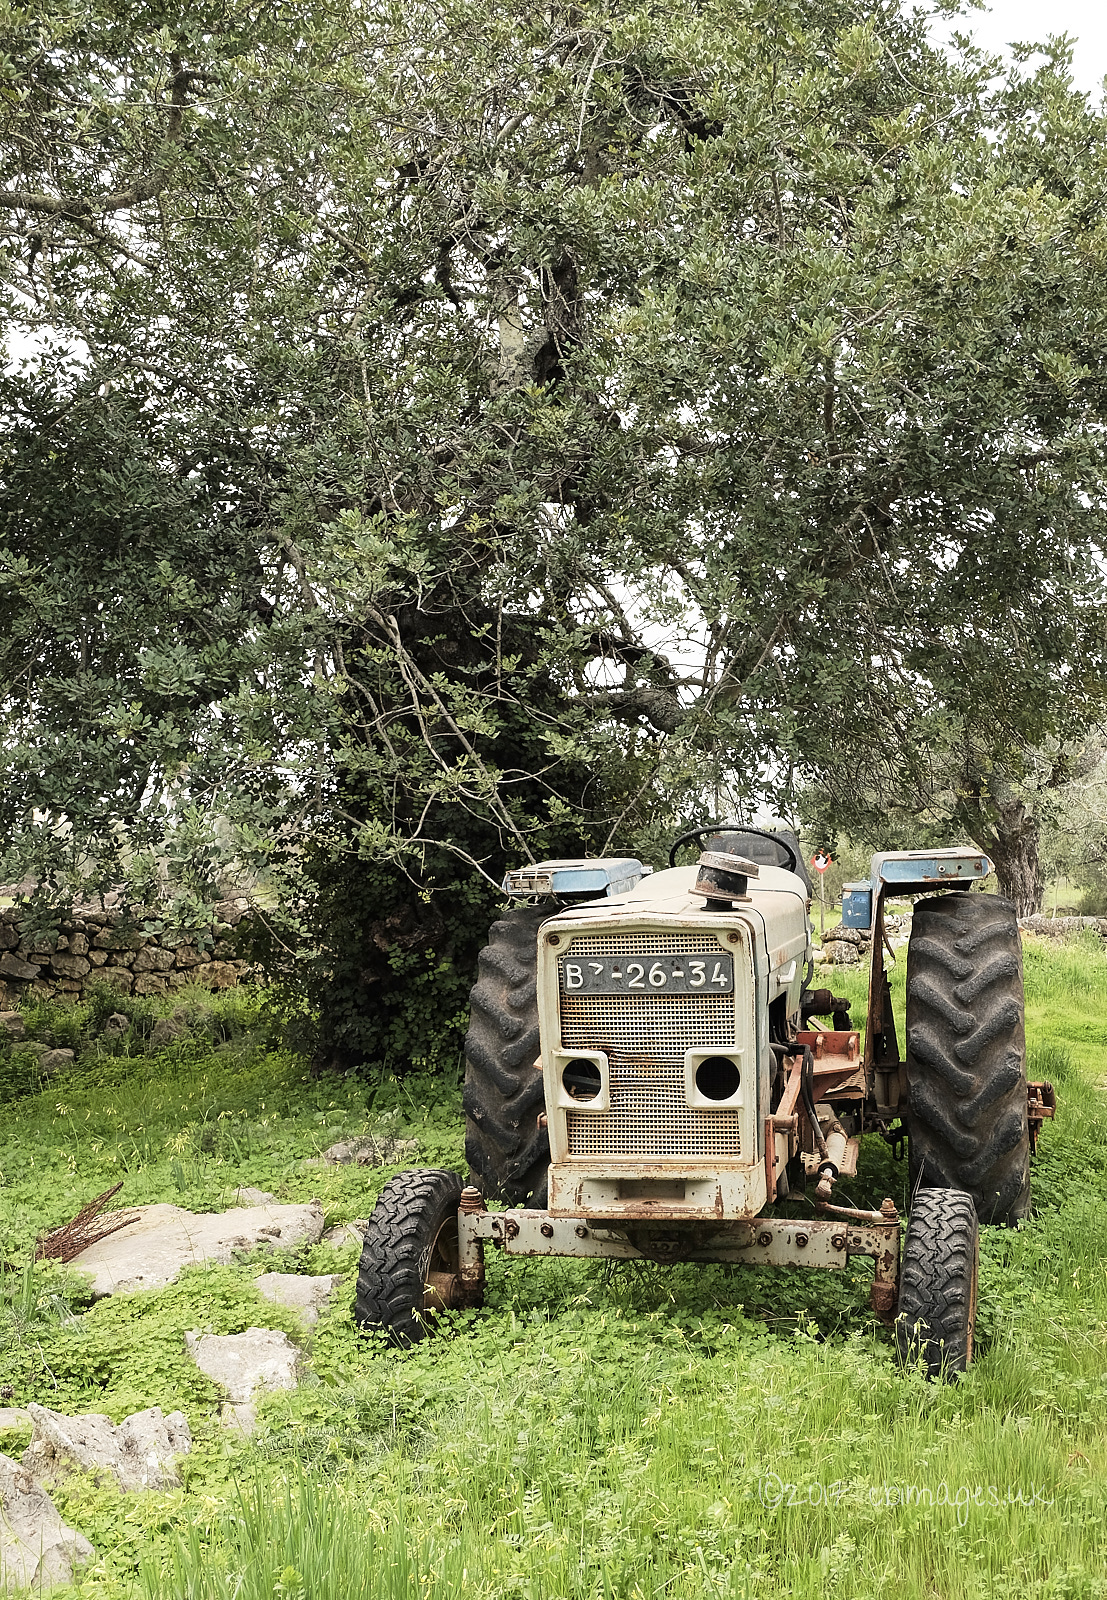 Old tractor in grass